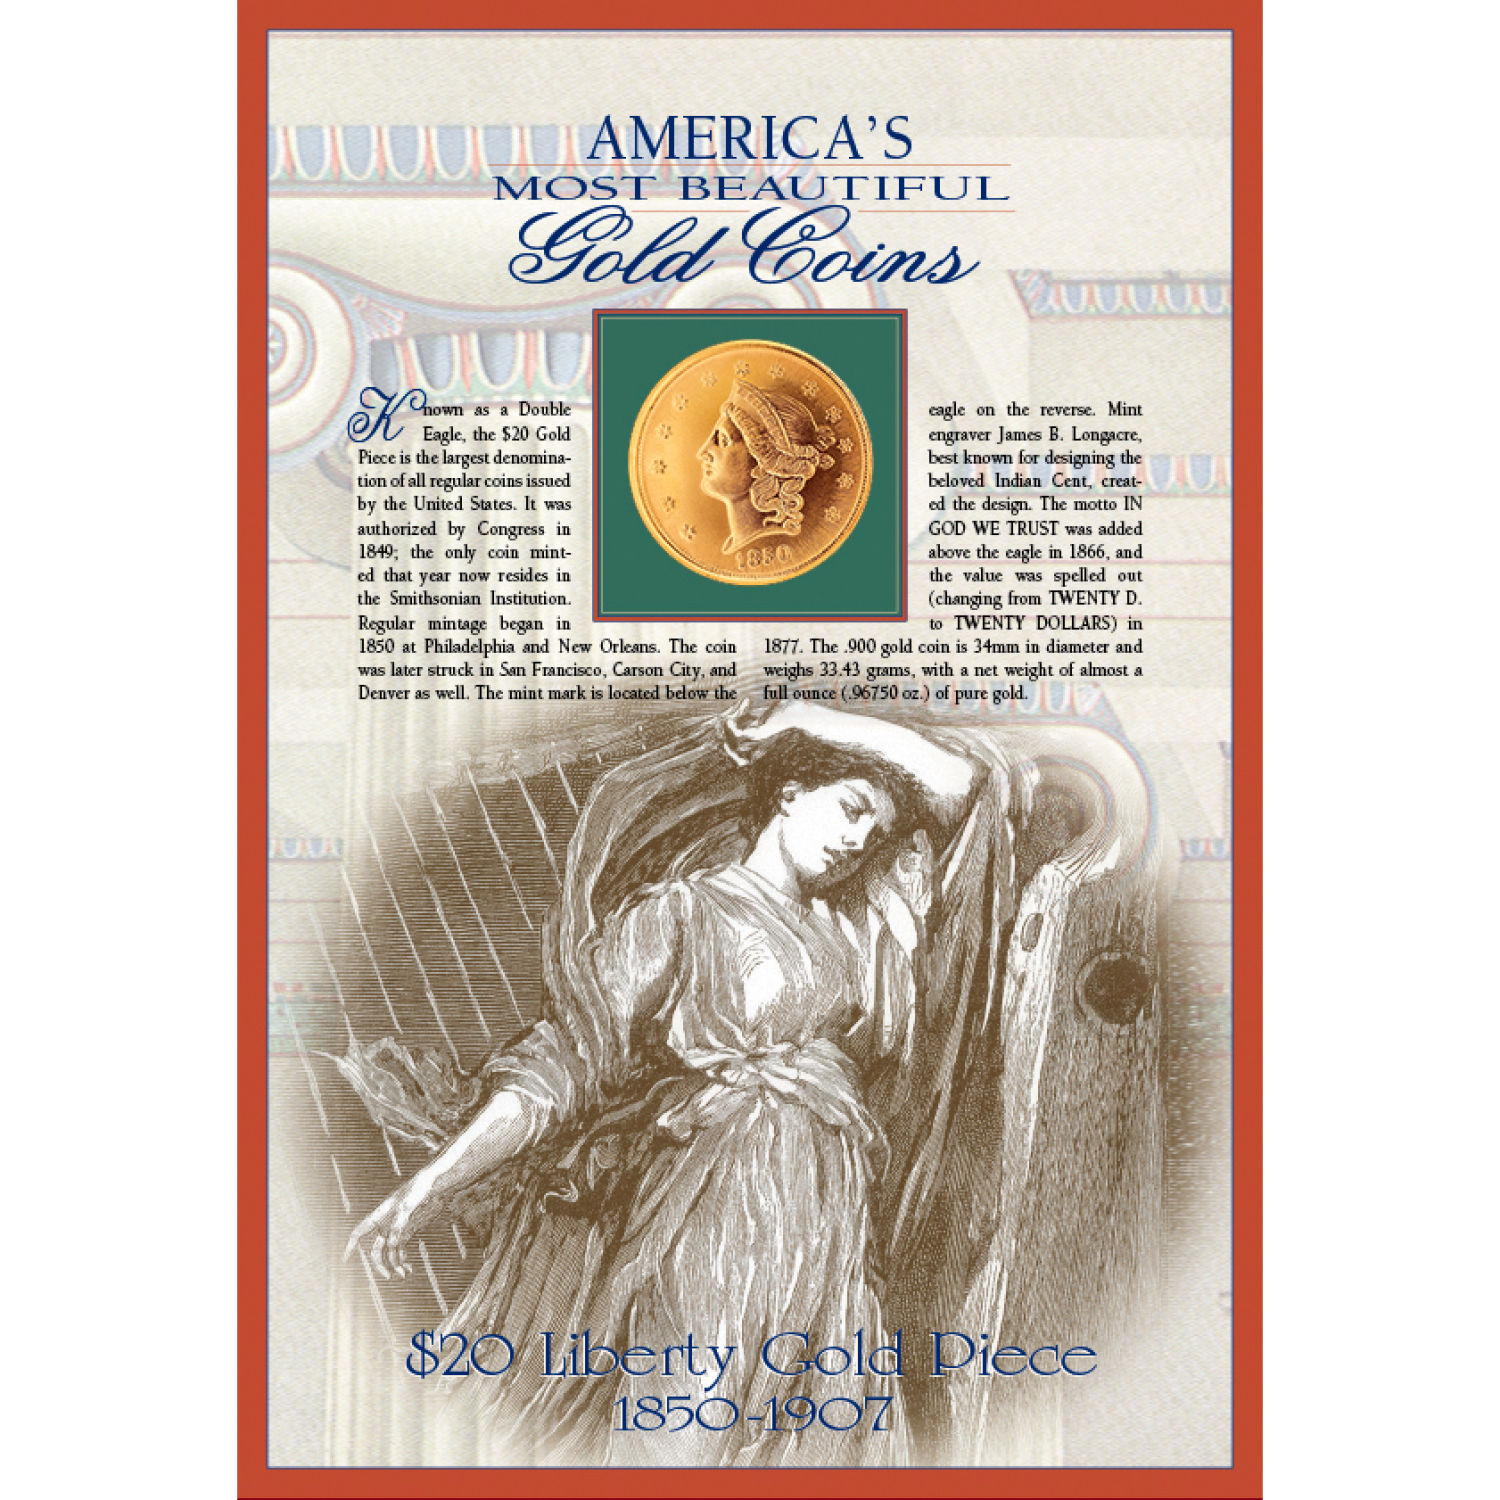 Tribute To America's Most Beautiful Coins - $20 Liberty Gold Piece 1850-1907 Replica Coin